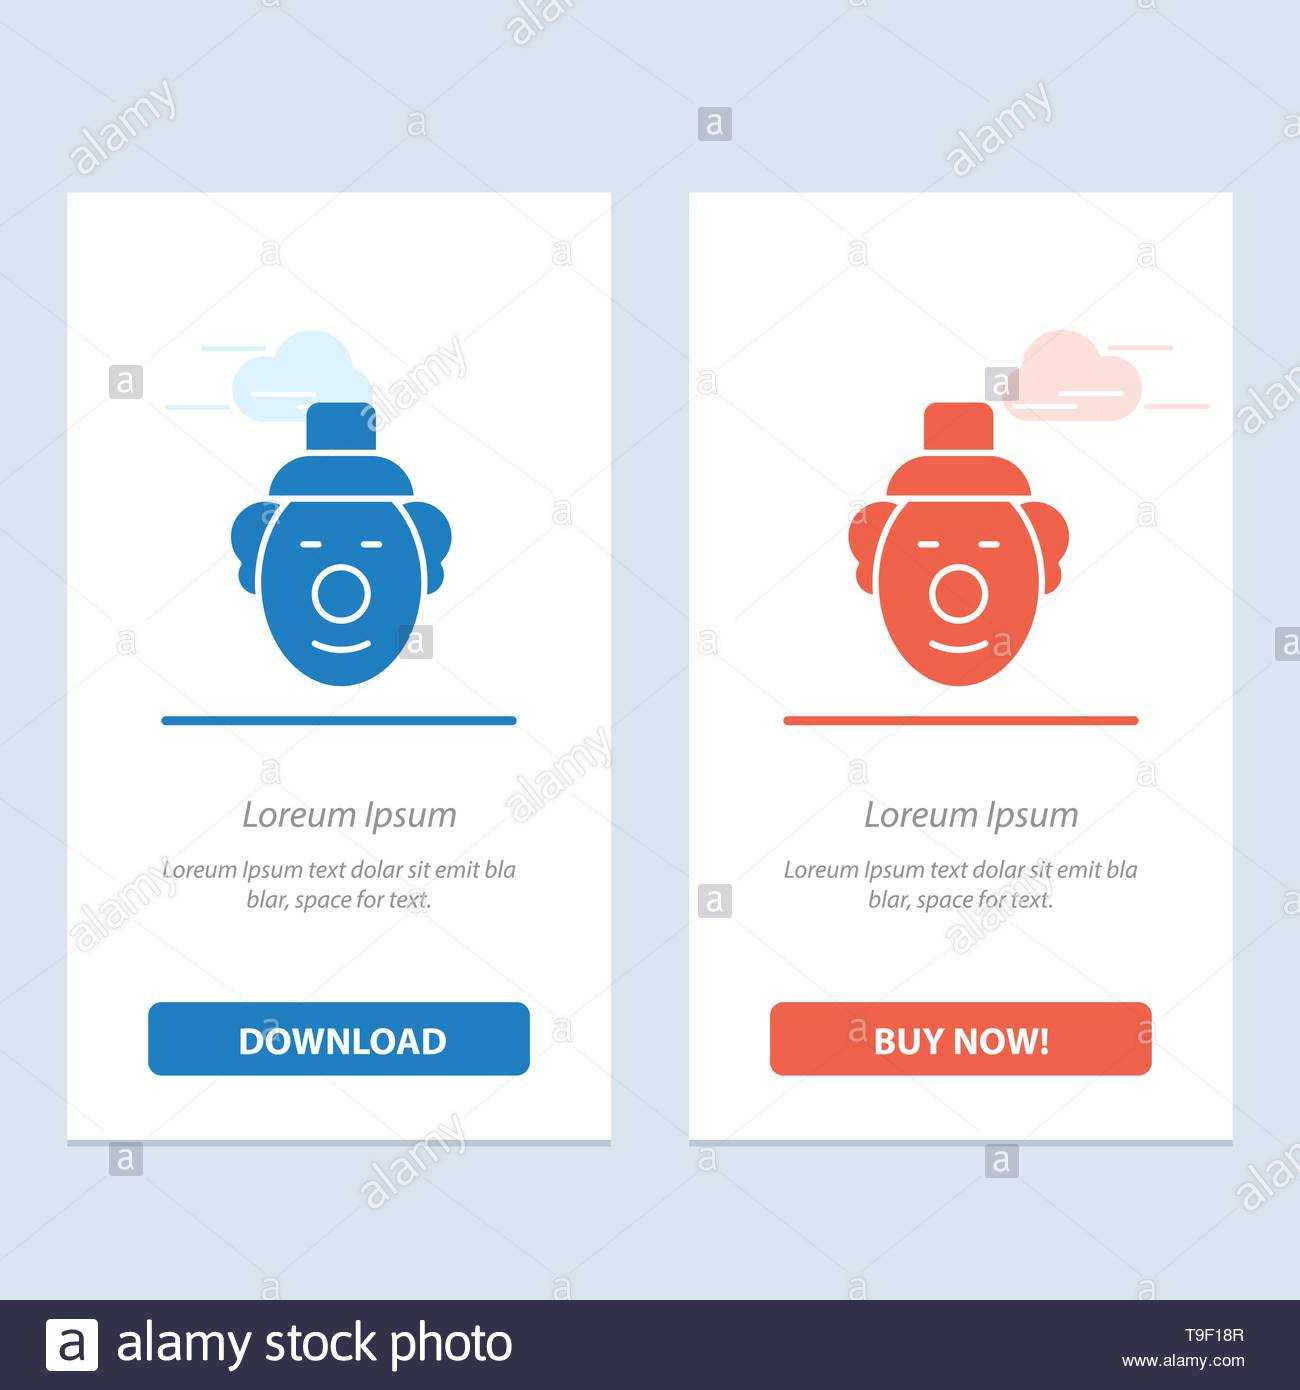 Joker, Clown, Circus Blue And Red Download And Buy Now Web With Joker Card Template